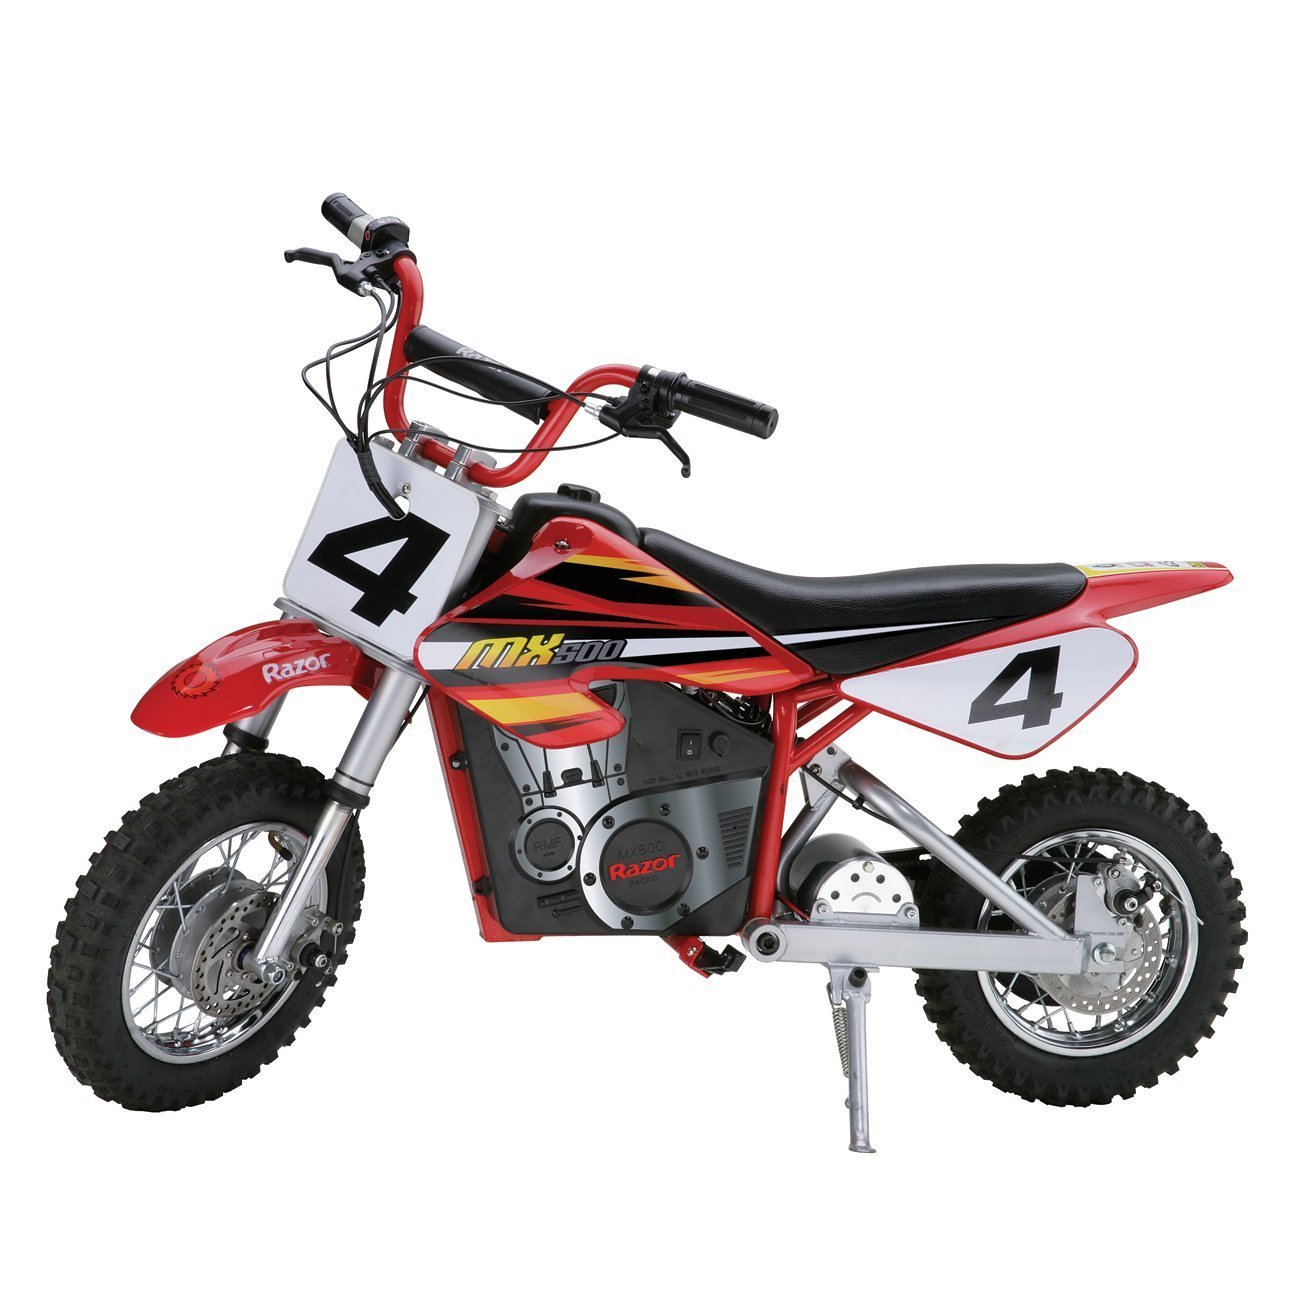 Razor MX500 Motocross e-bike